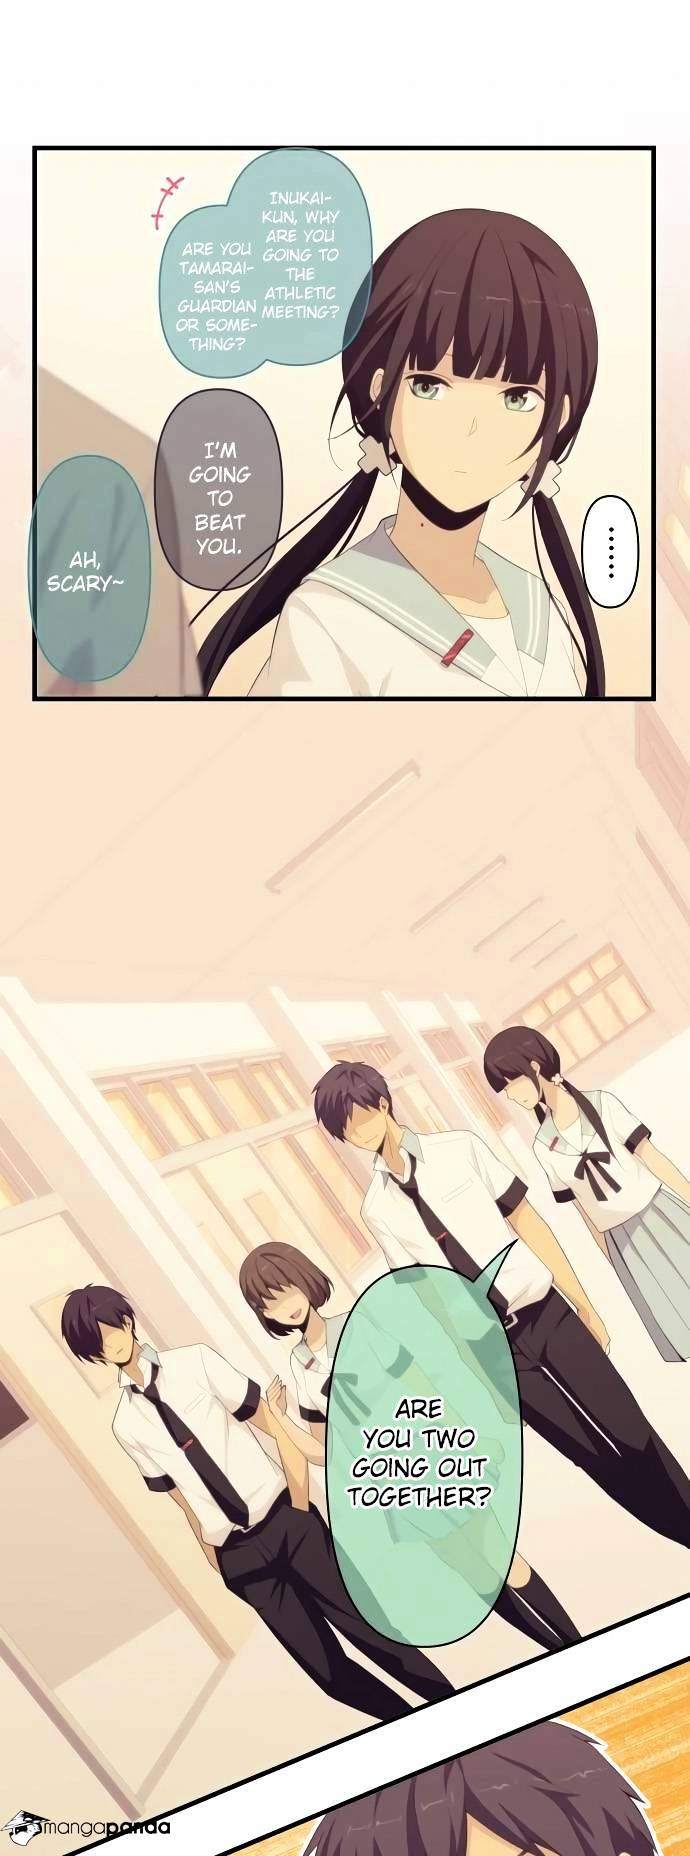 ReLIFE Chapter 128 Online Free Manga Read Image 5